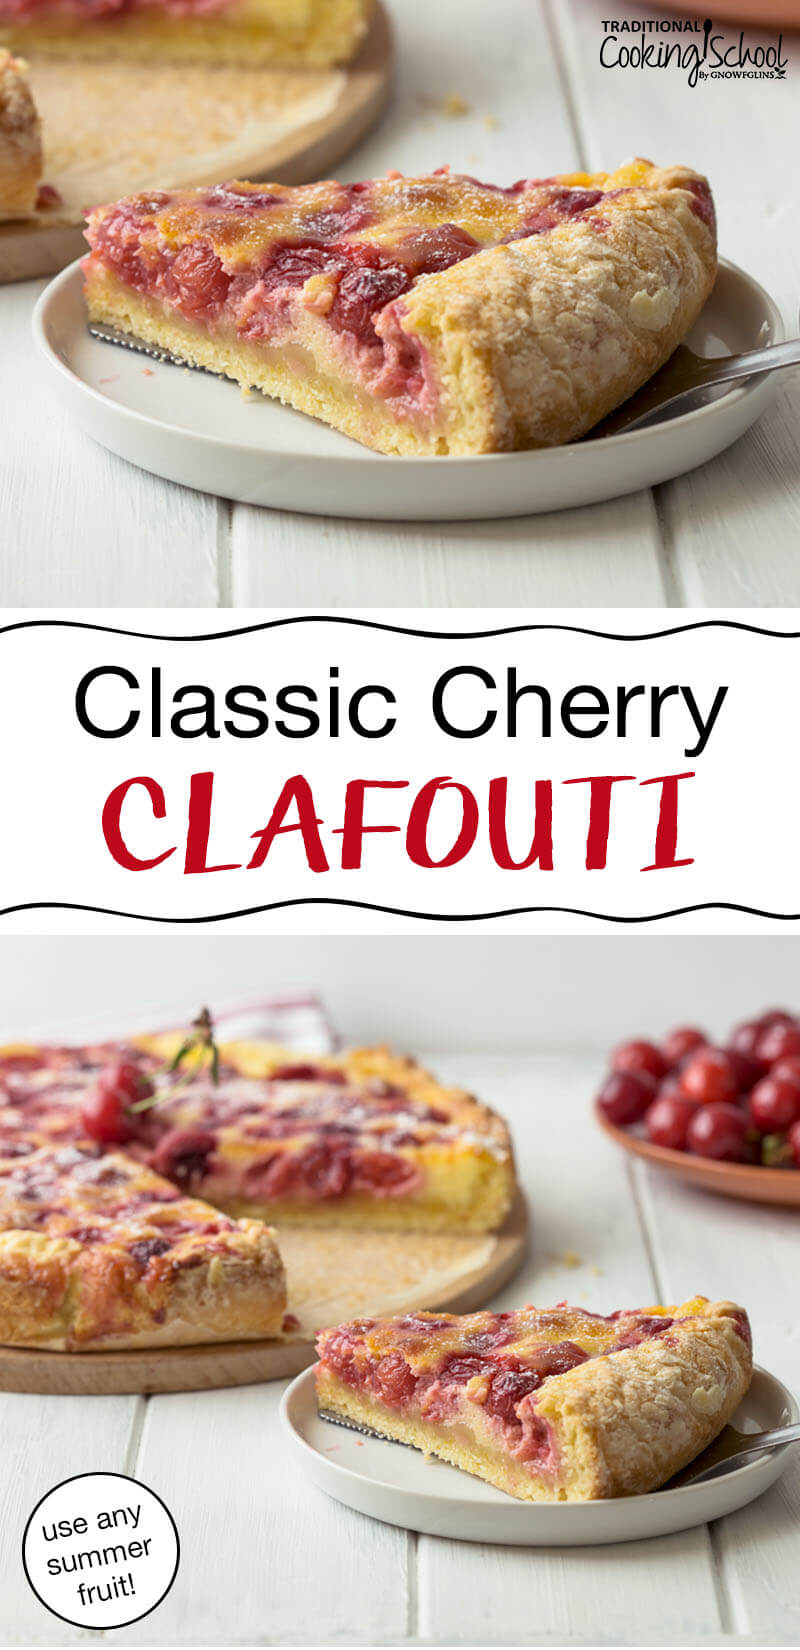 Classic Cherry Clafoutis | Cherry season is nearly over, but until the last fruit drops from the tree, I will be reveling in the summer sweetness only cherries can offer. I'm a sucker for creamy, silky-smooth custards in all their glorious forms and cherries are a perfect vehicle for the classic French flan that is a sultry <em>ménage à trios</em> of pancake, custard, and cake -- the clafouti. | TraditionalCookingSchool.com